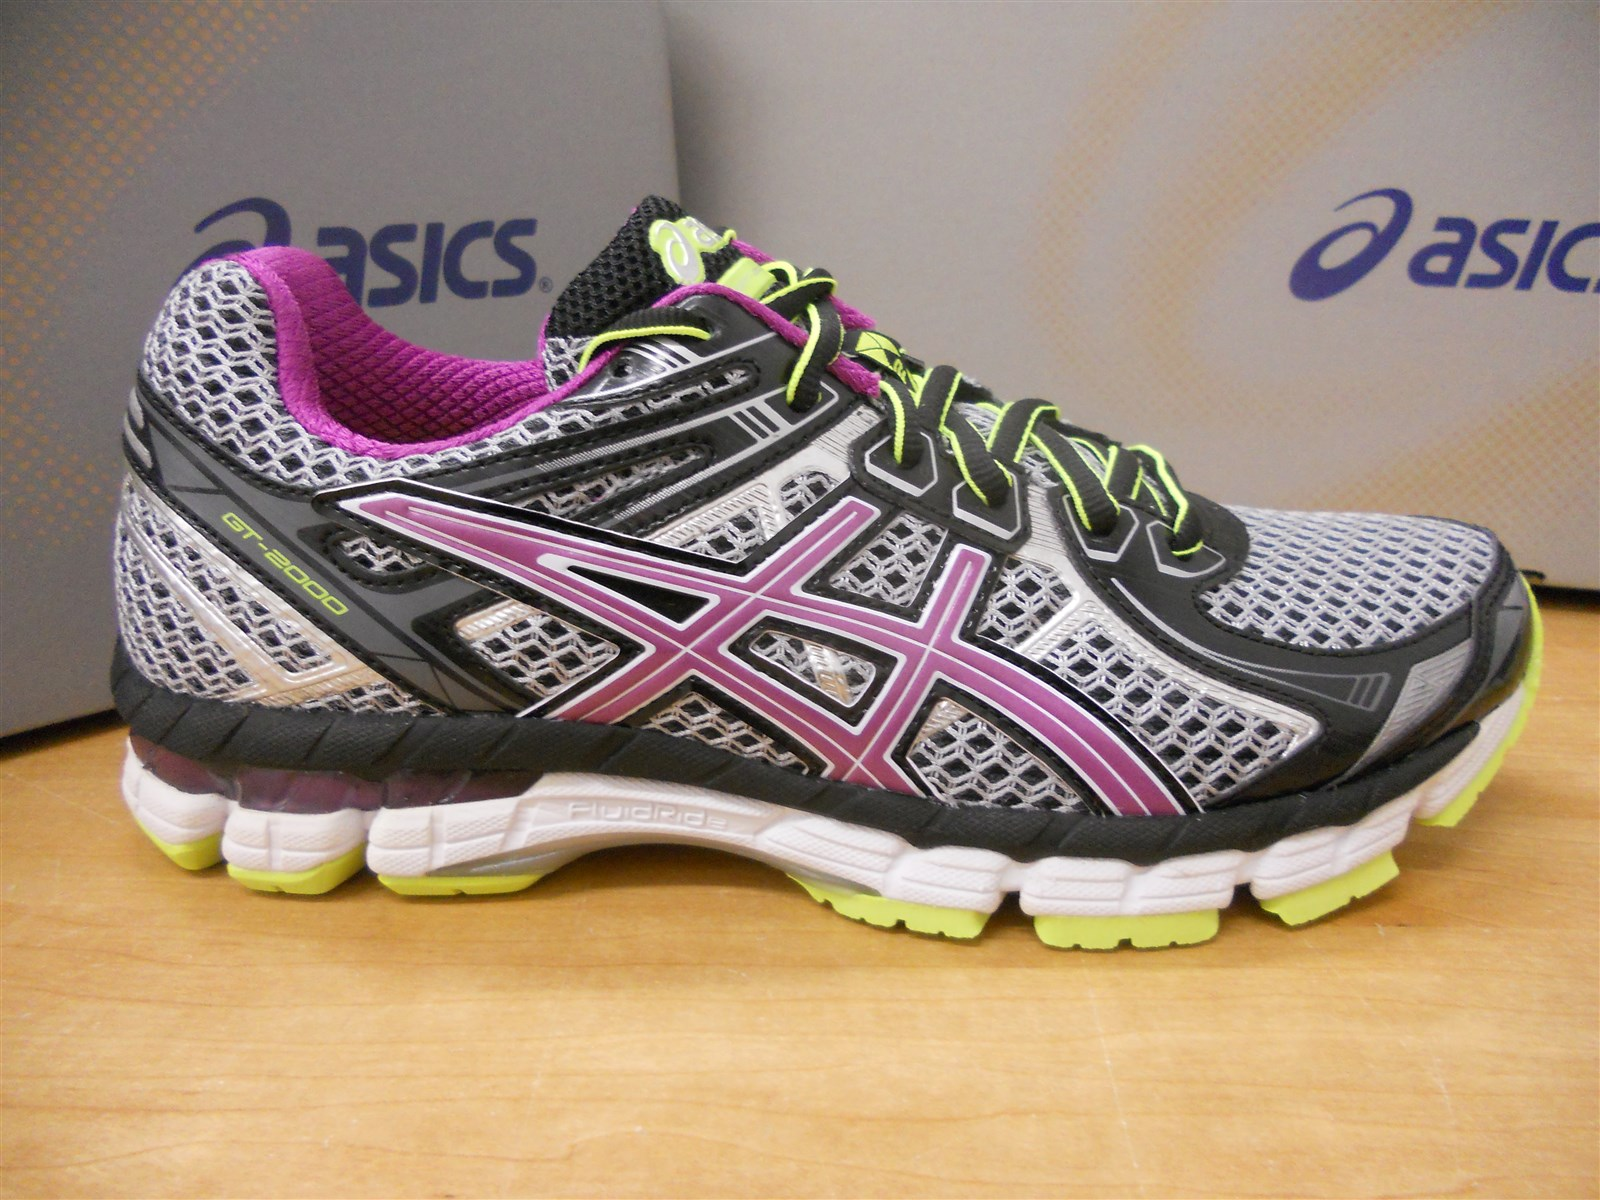 Details about NEW ASICS GT 2000 2 RUNNING SHOES WOMENS SIZE 11 WIDE